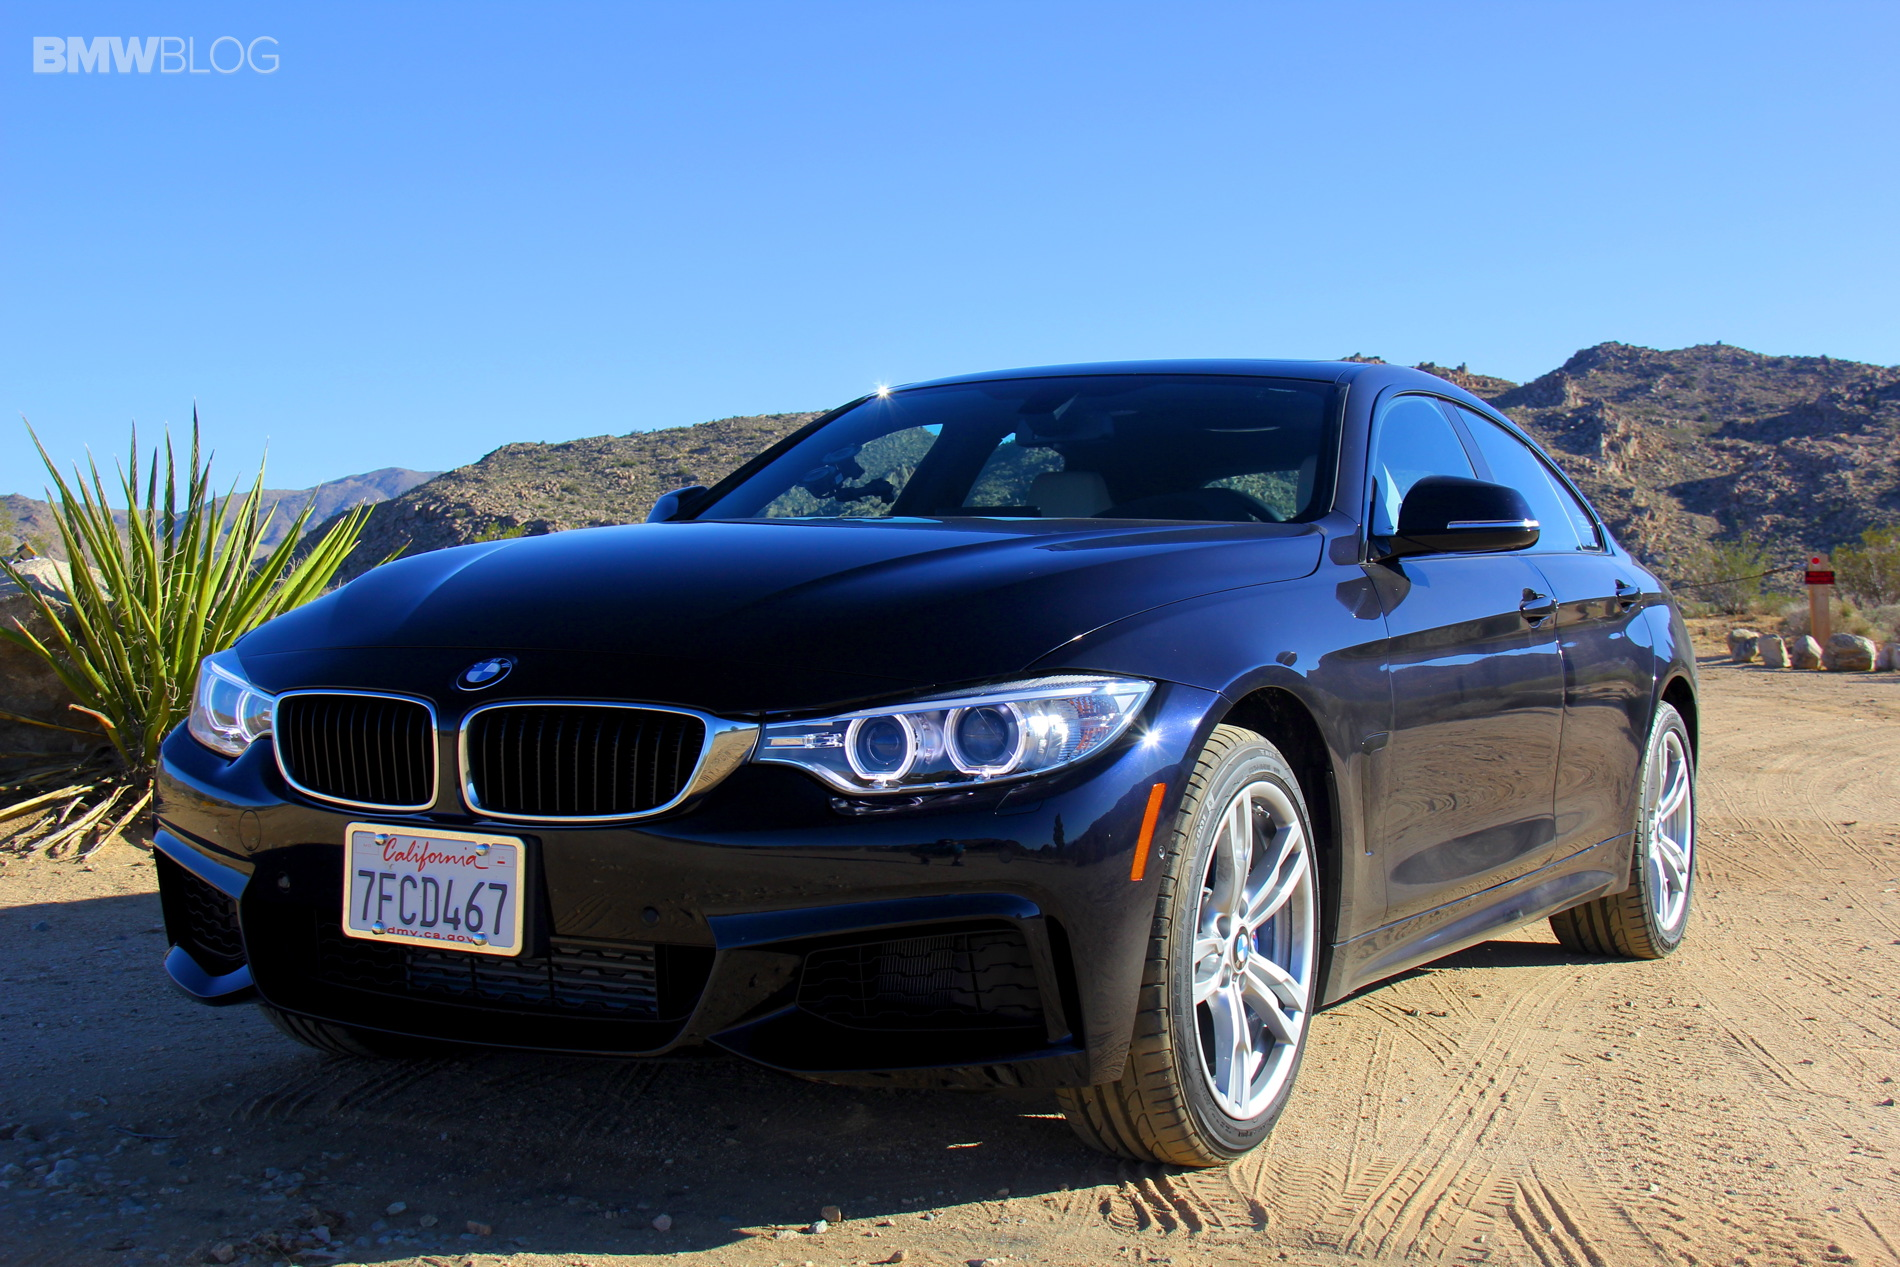 Bmwblog Test Drive Bmw 4 Series Gran Coupe